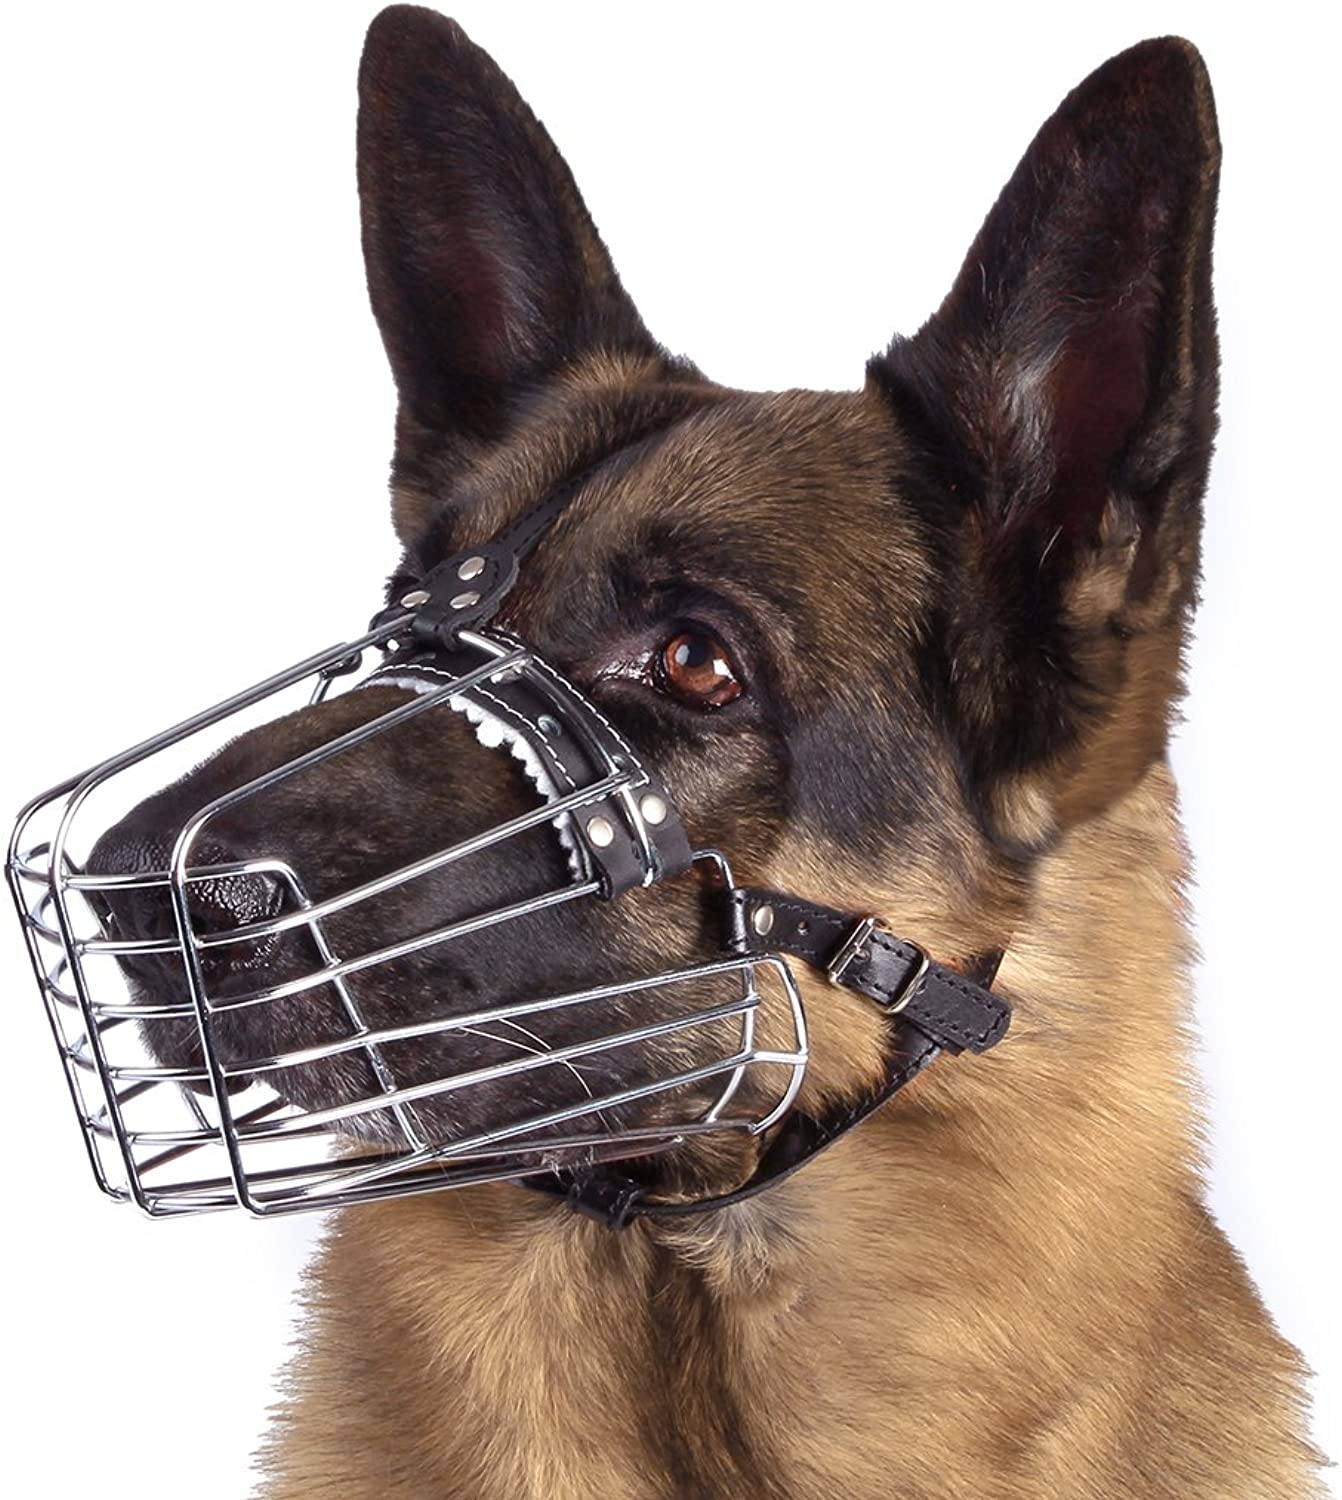 BronzeDog Dog Muzzle German Shepherd Wire Basket Metal Mask Leather Adjustable Medium Large Pets (M)